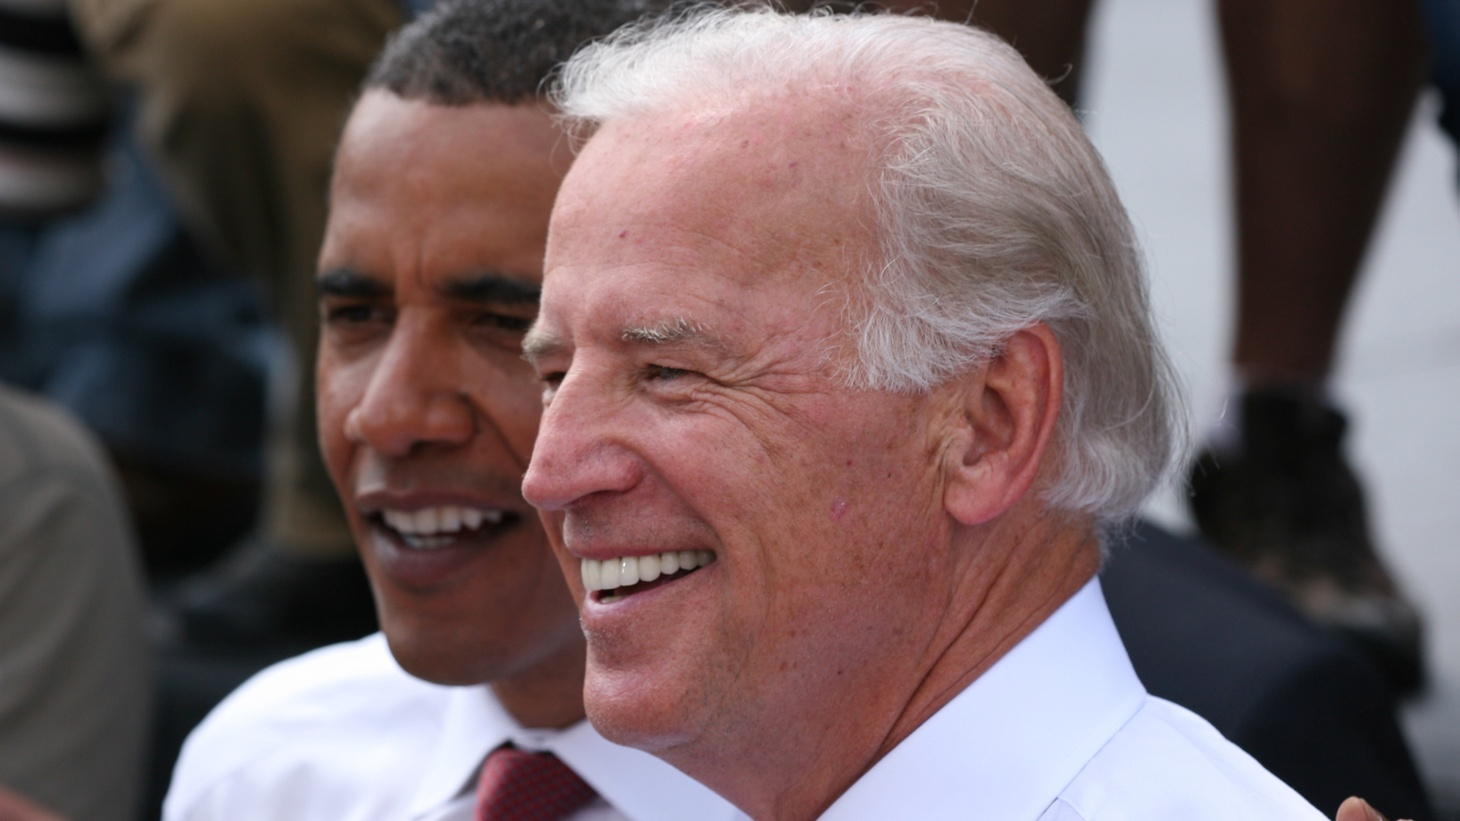 """Decades after President Richard Nixon declared """"war on cancer,"""" 600,000 Americans die from it every year. Vice President Joe Biden is guarding against unrealistic expectations with a """"Moon Shot"""" aimed at doubling the rate of medical progress rather than promising a cure."""